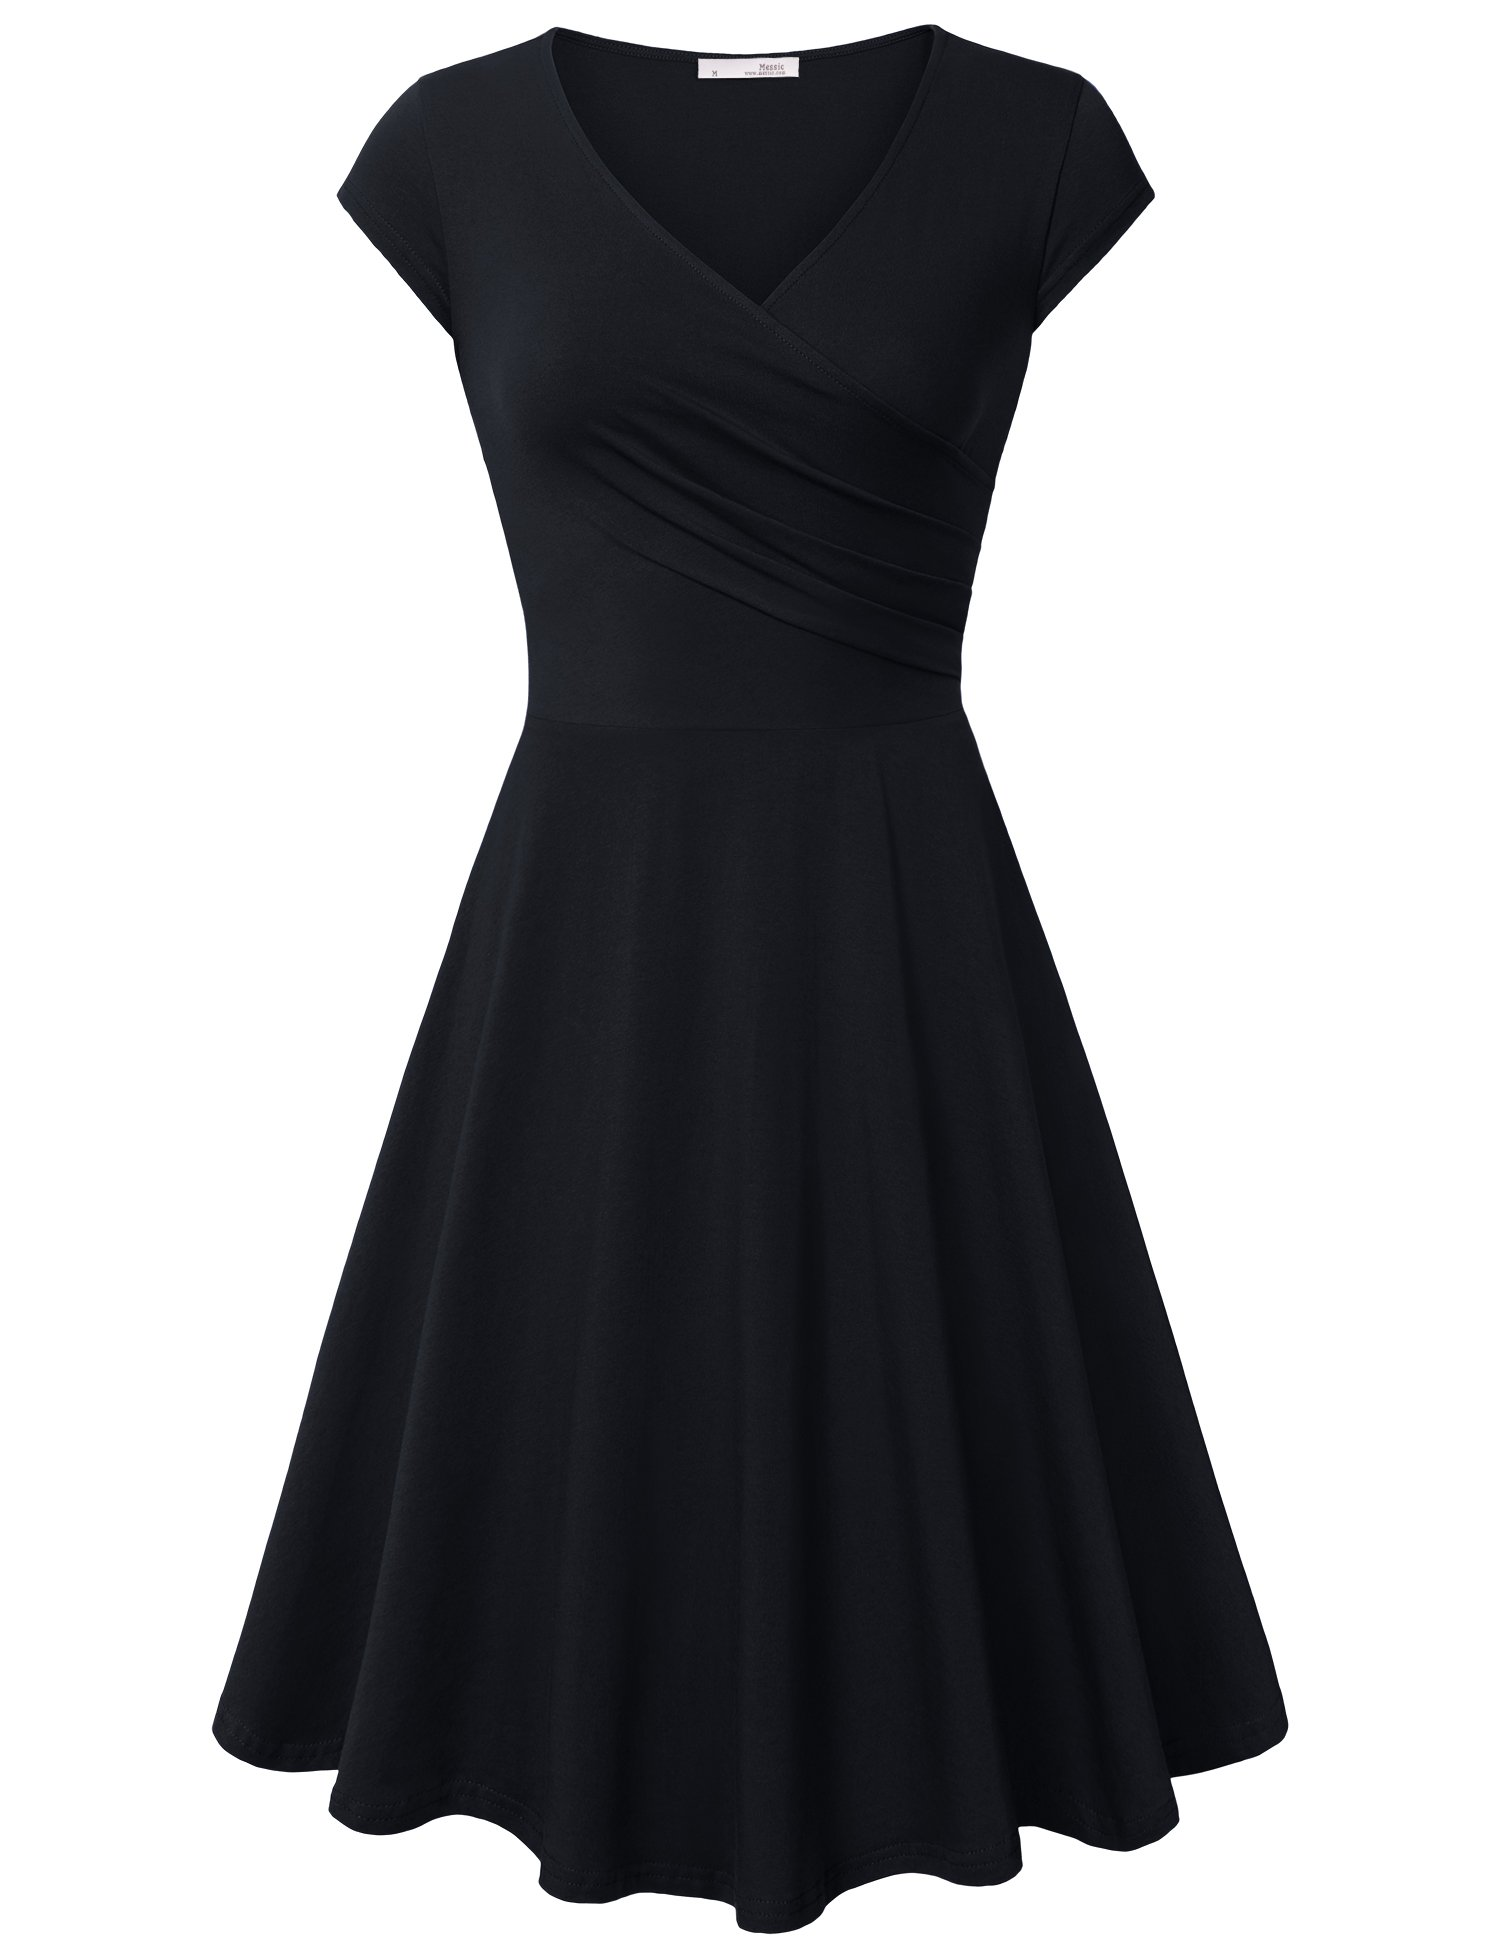 Business Dresses for Women Cap Sleeve Knee Length Sexy Cross V Neck Wrap Elestic Sundresses Black Funeral Dress Casual Party Stretchable Elegant Dresses Black Large by Messic Direct